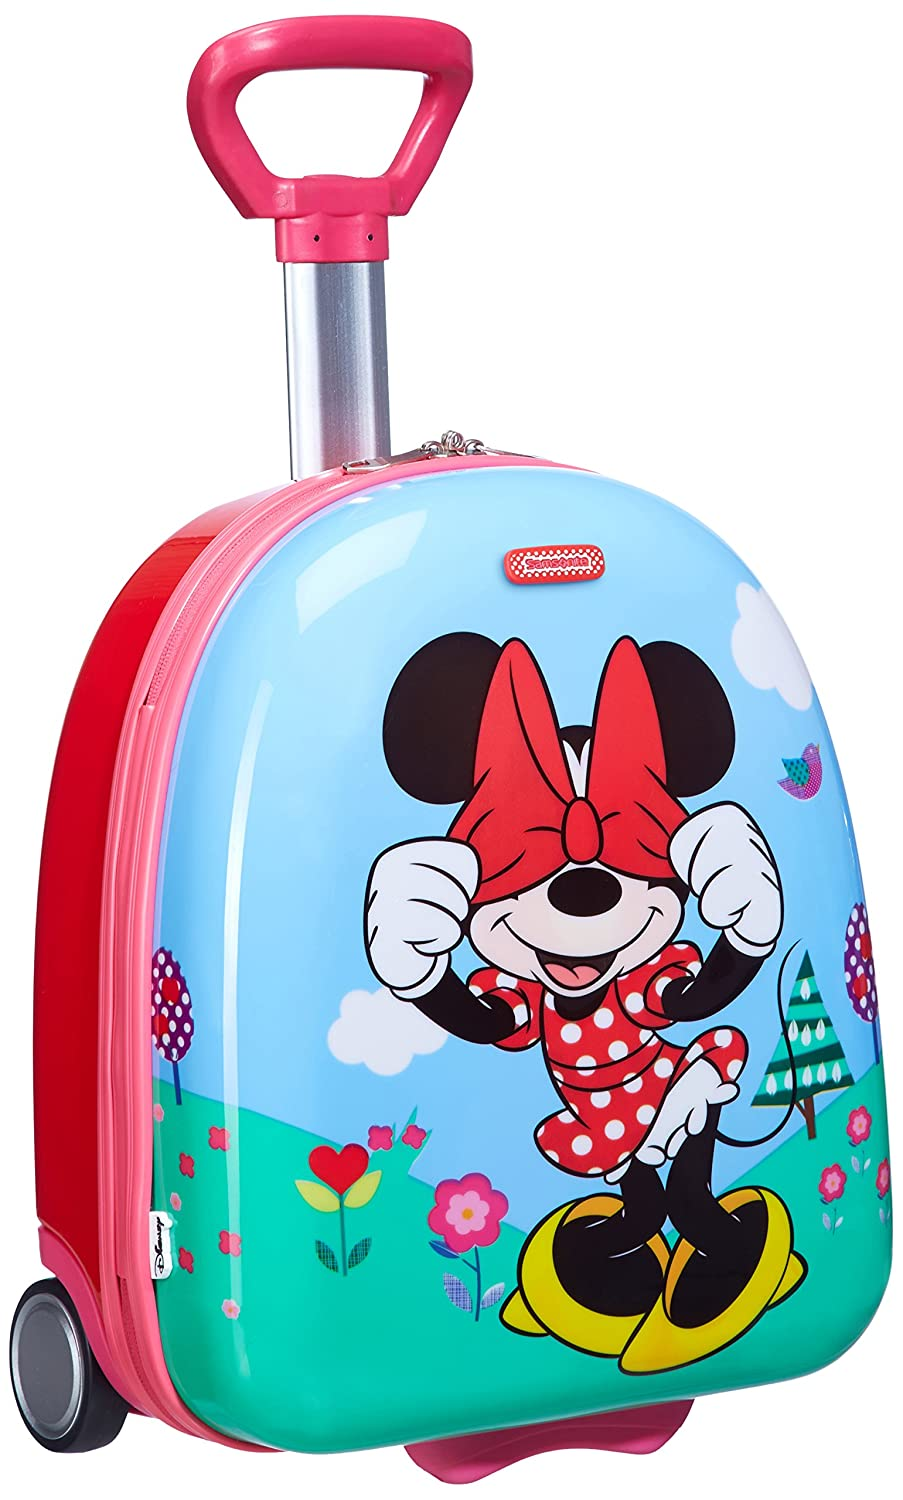 Disney by Samsonite Kindergepäck Disney Wonder Hard Upright 45/16 21.5 Liters Mehrfarbig (Minnie Floral) 63597-4405